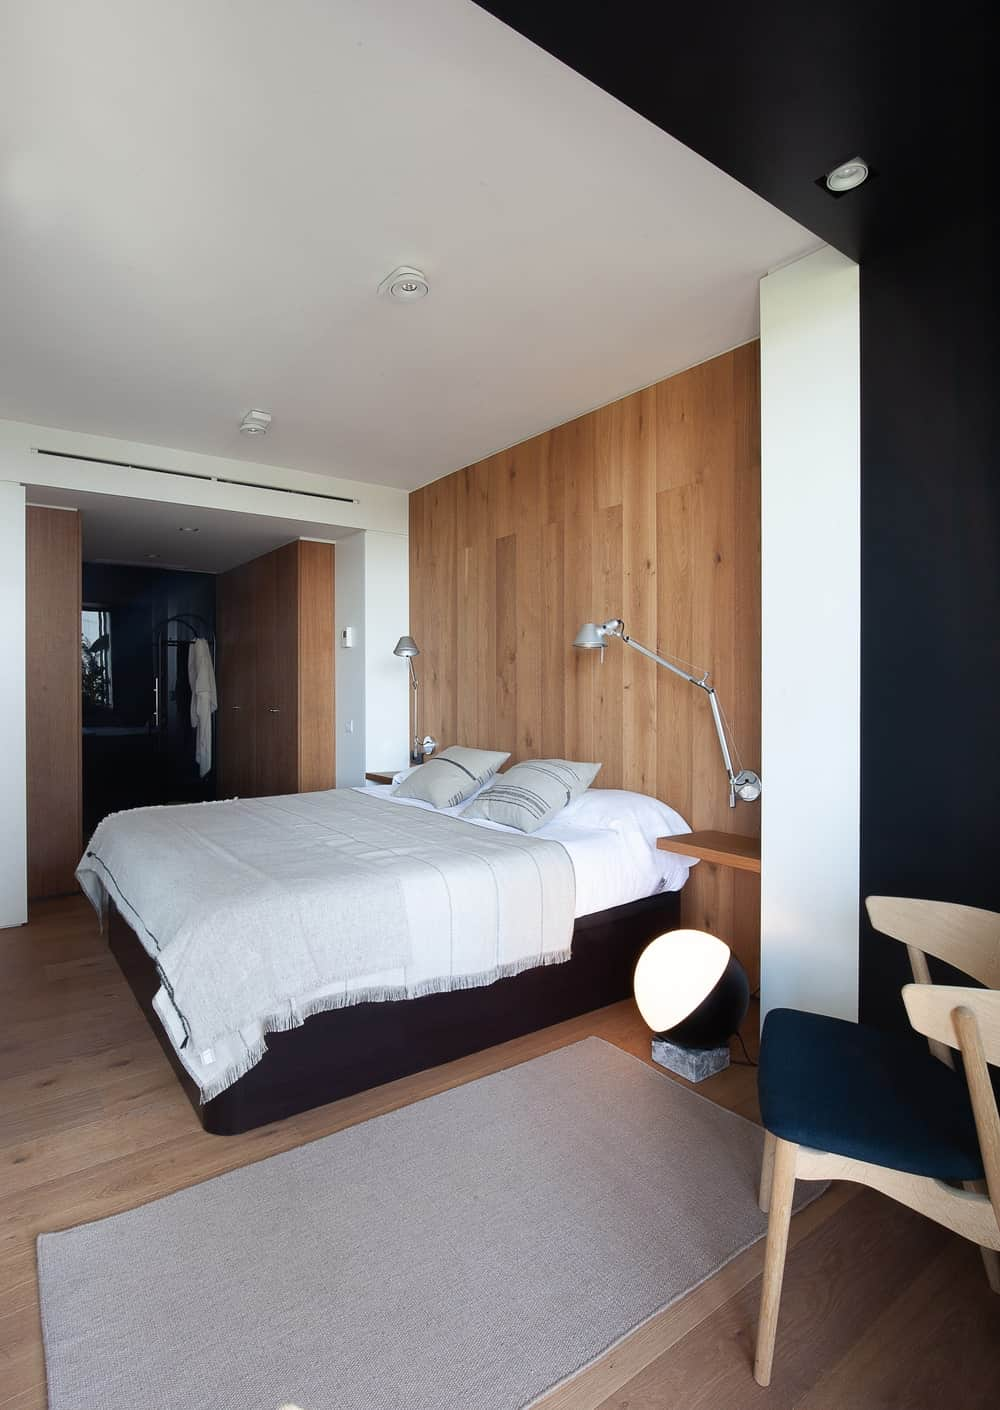 The black platform bed has contrasting white sheets. Behind it is a wooden wall that matches with the hardwood flooring that is adorned with a modern floor lamp and a gray area rug by the sitting area that has a wooden chair.